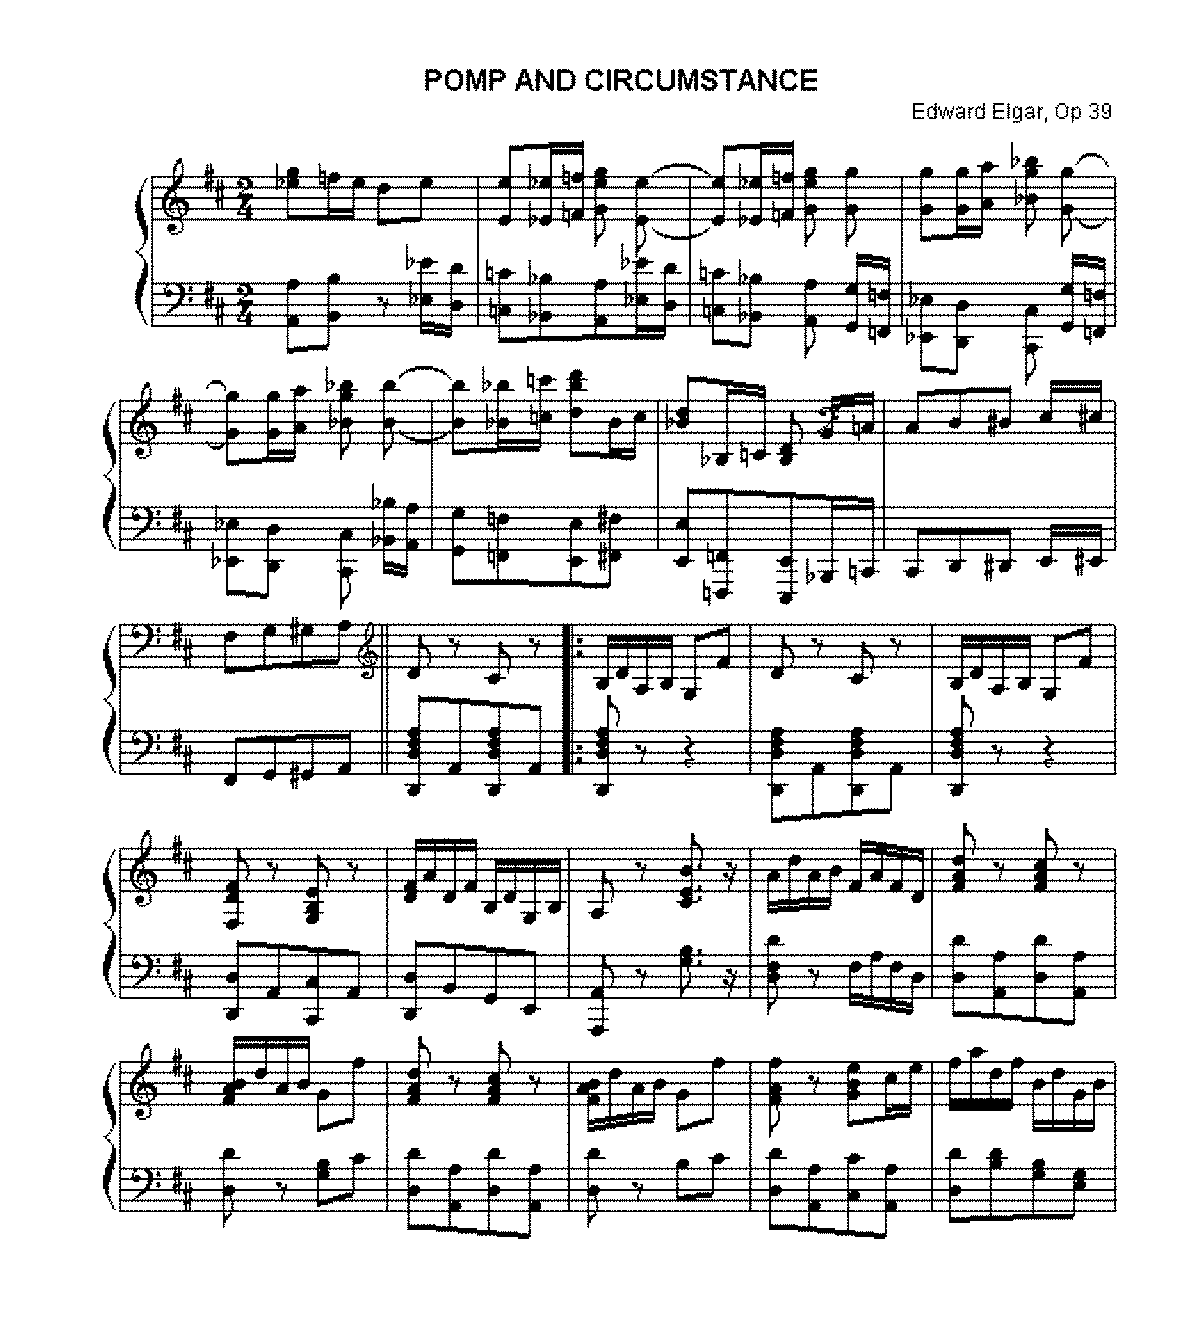 Elgar op39 pomp and circumstance piano.pdf